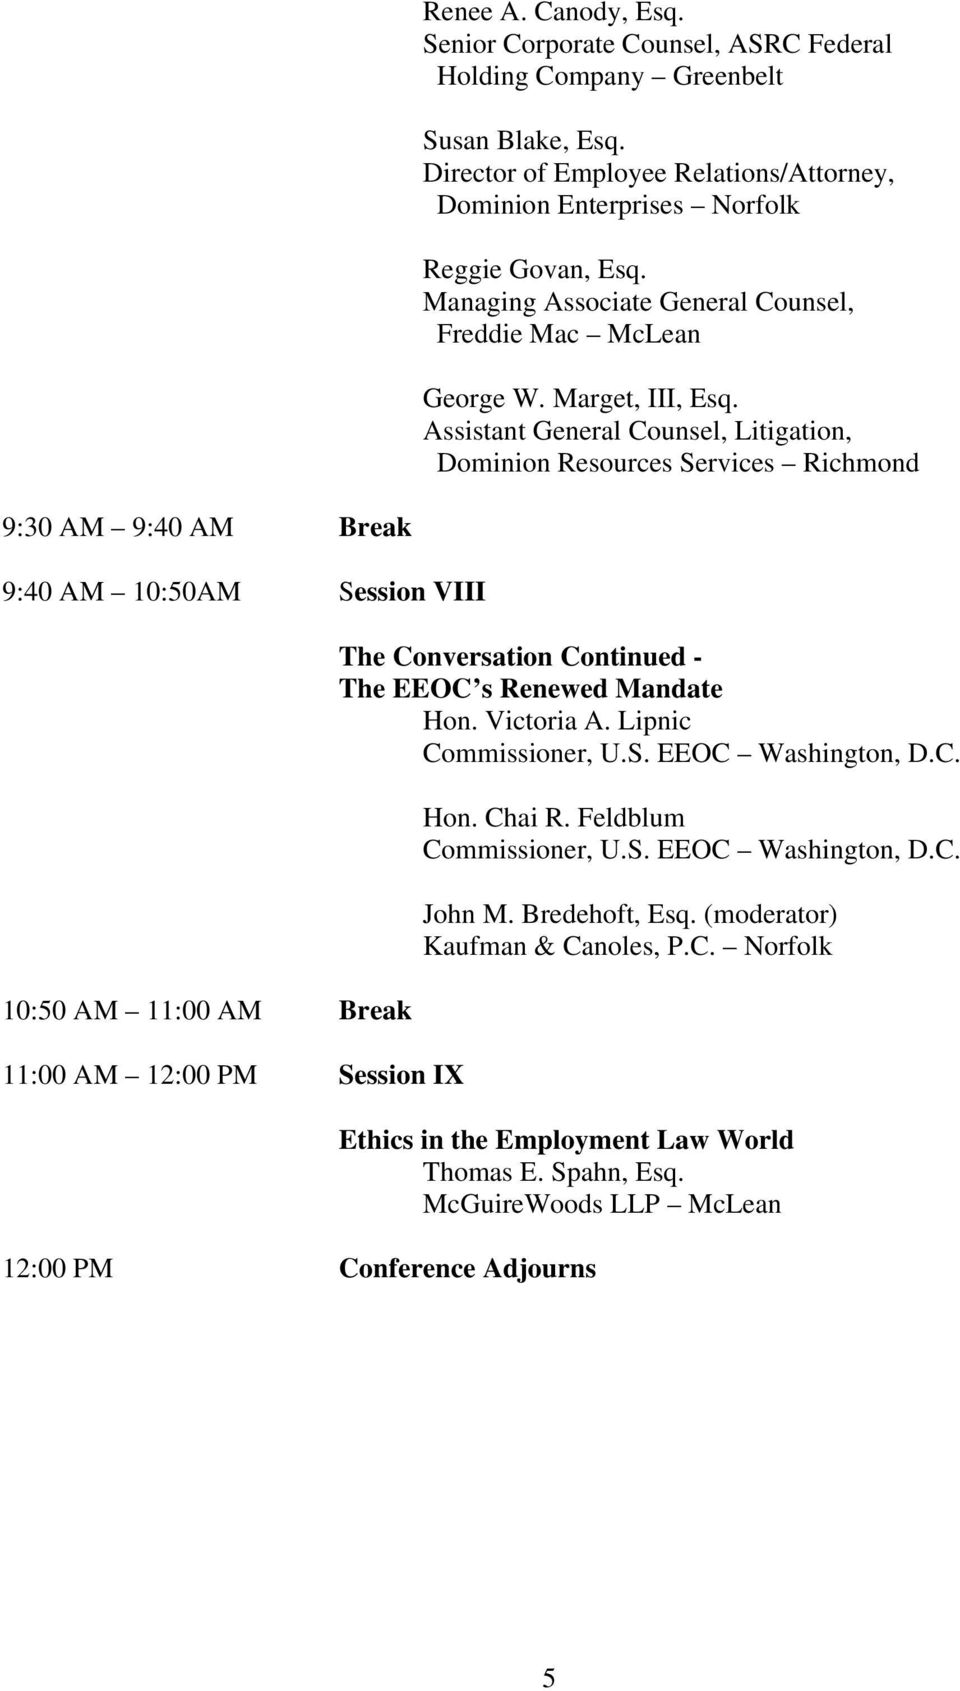 Assistant General Counsel, Litigation, Dominion Resources Services Richmond 9:30 AM 9:40 AM Break 9:40 AM 10:50AM Session VIII 10:50 AM 11:00 AM Break 11:00 AM 12:00 PM Session IX The Conversation